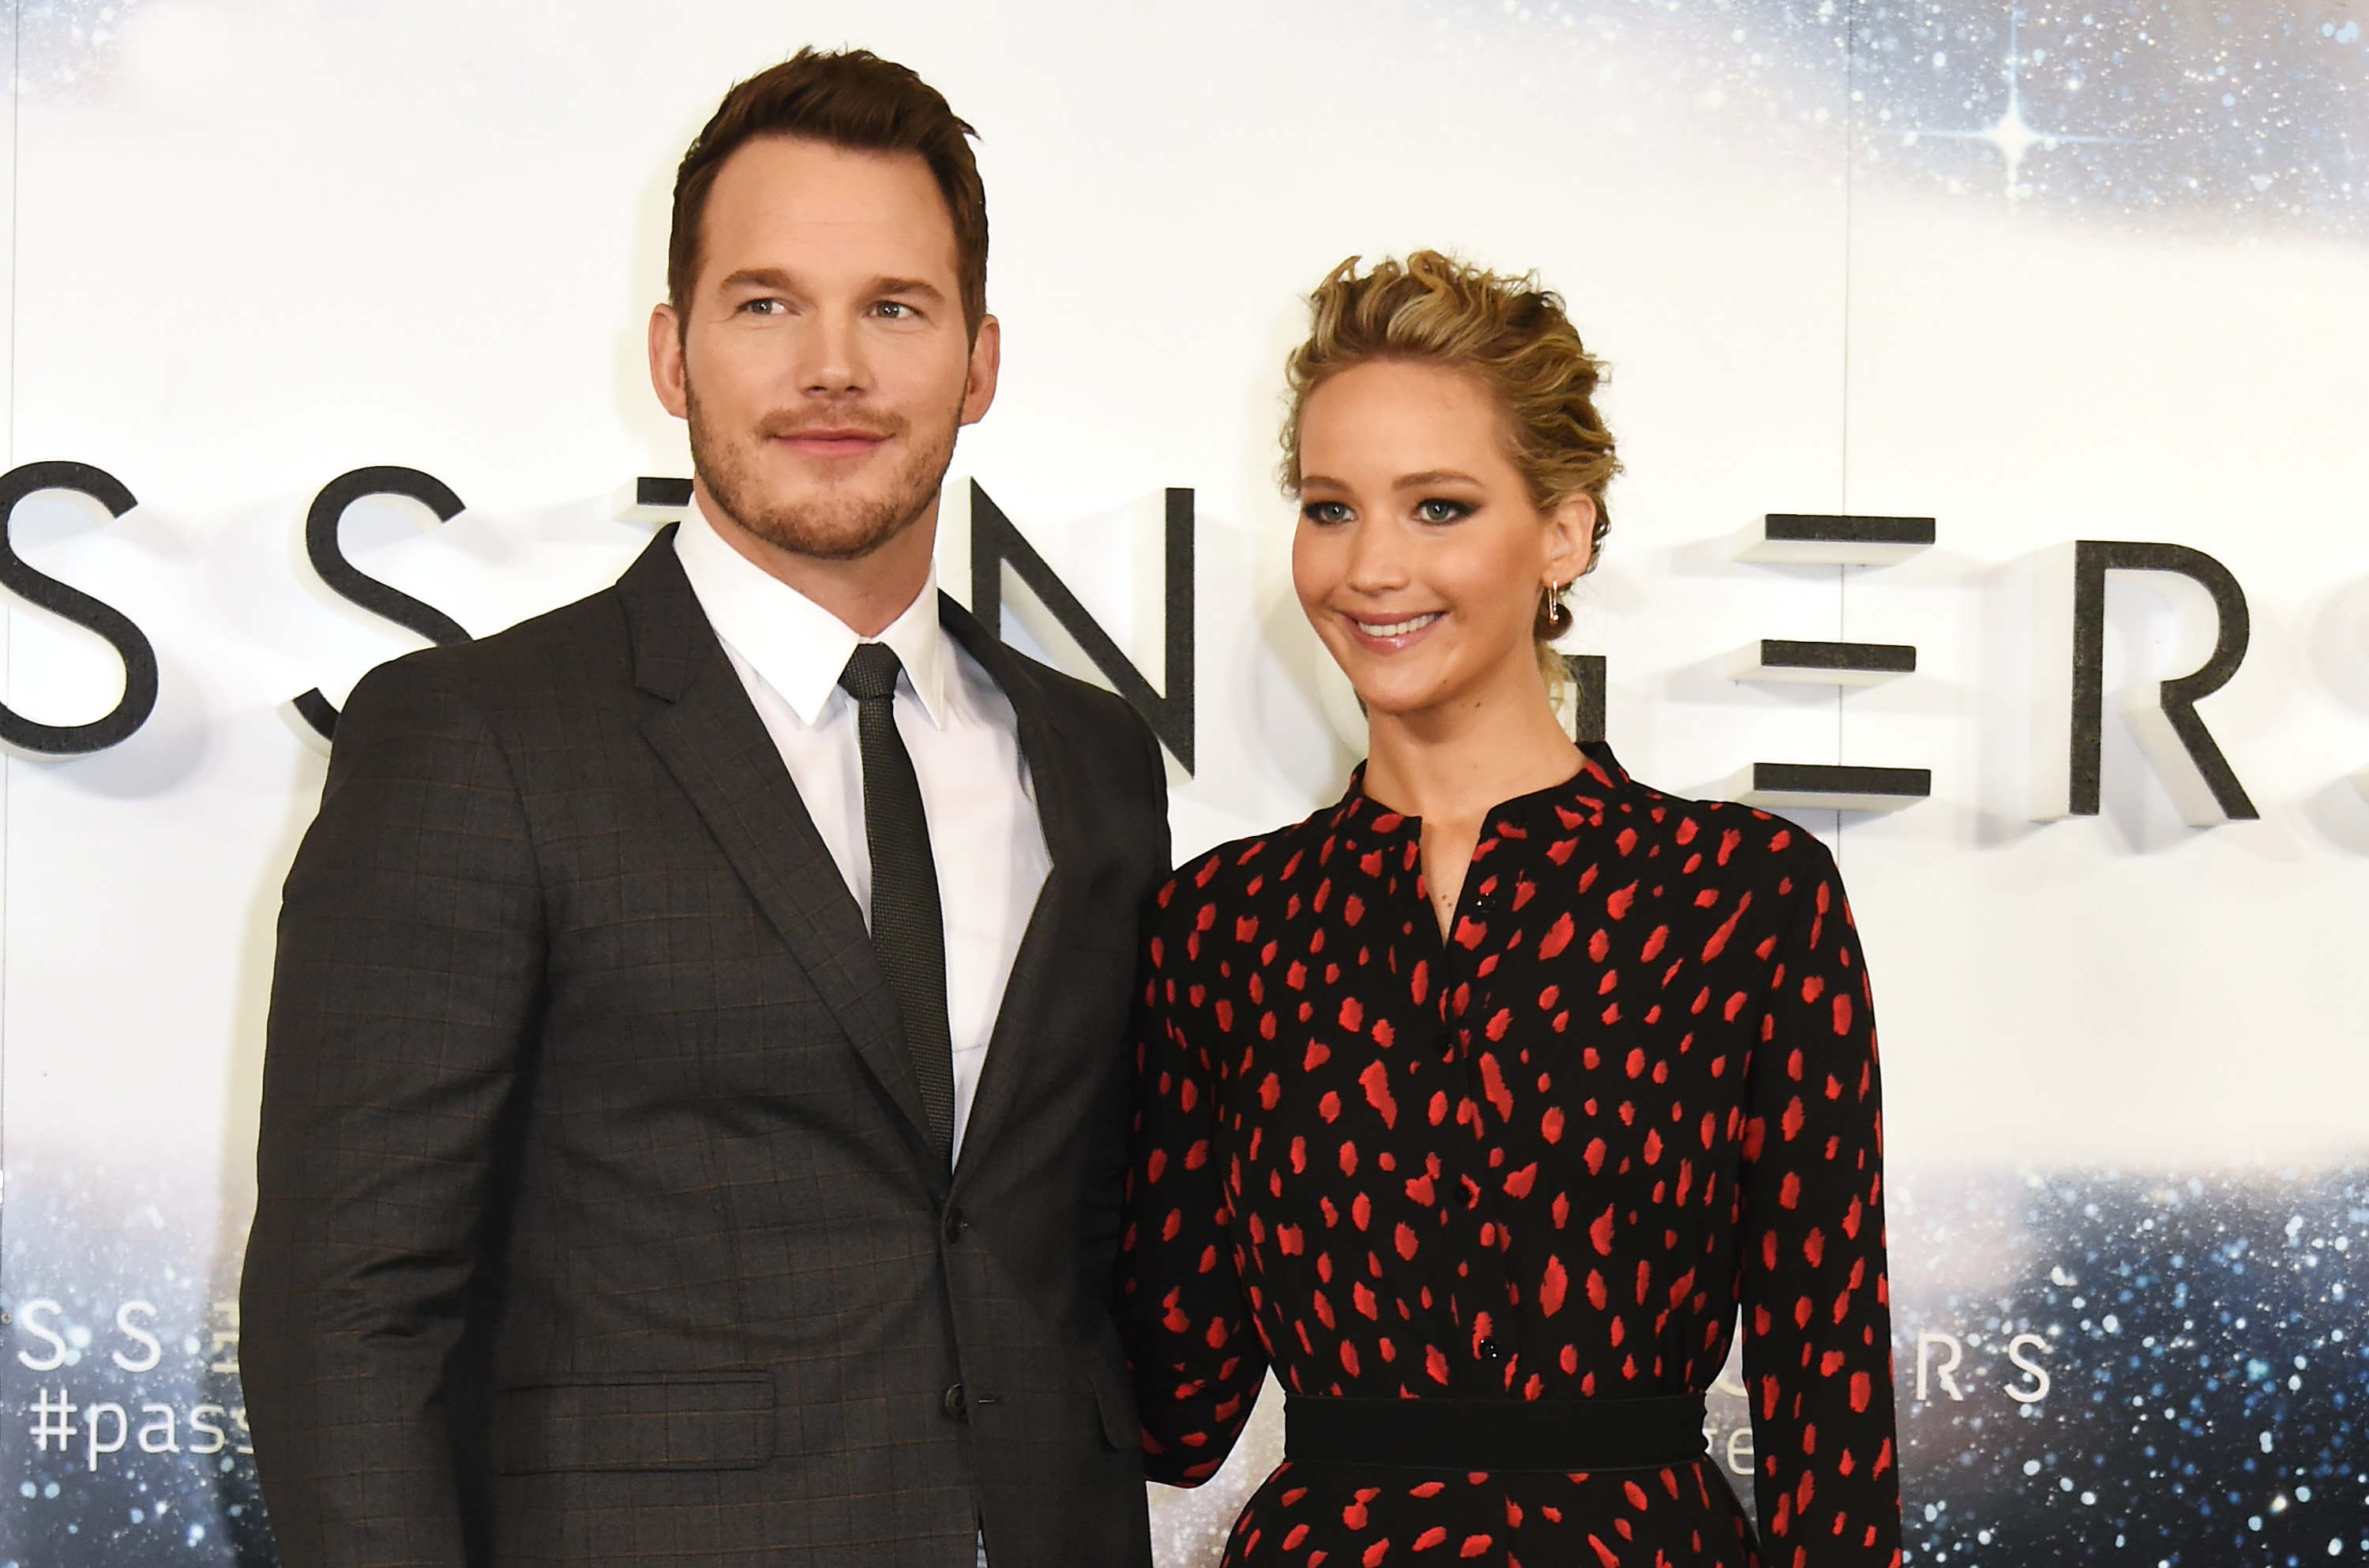 Chris Pratt and Jennifer Lawrence are having the best time ...